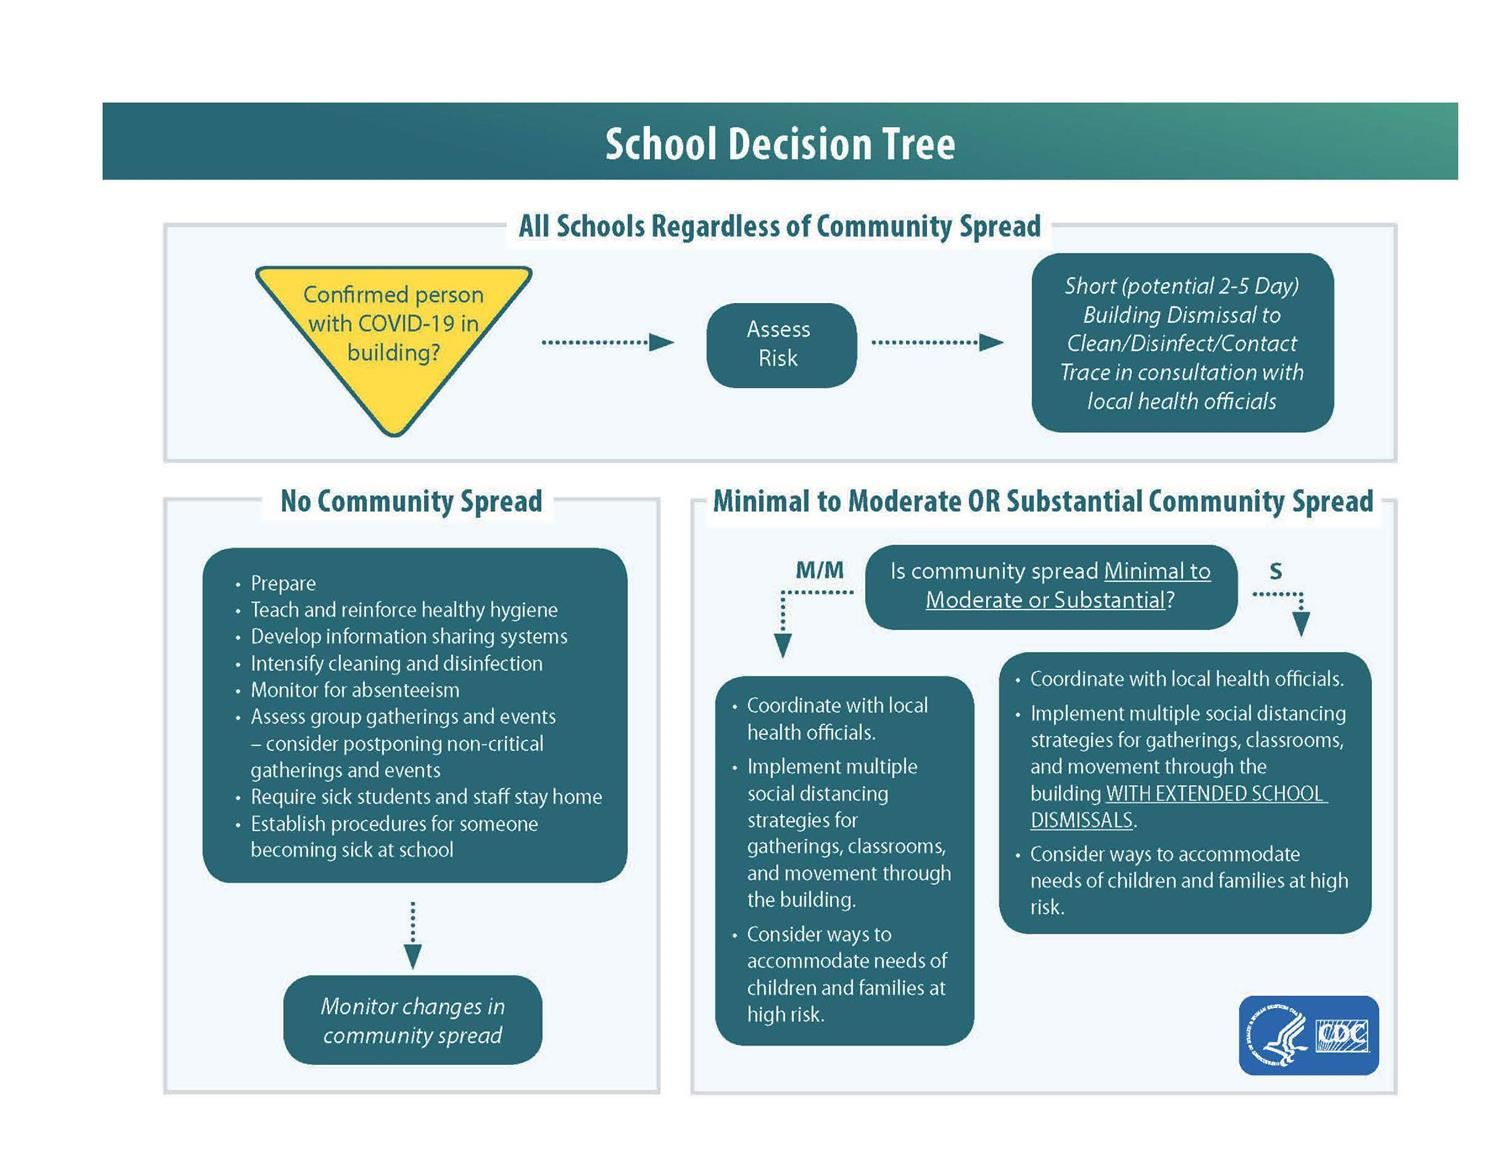 CDC School Closure Flow Chart